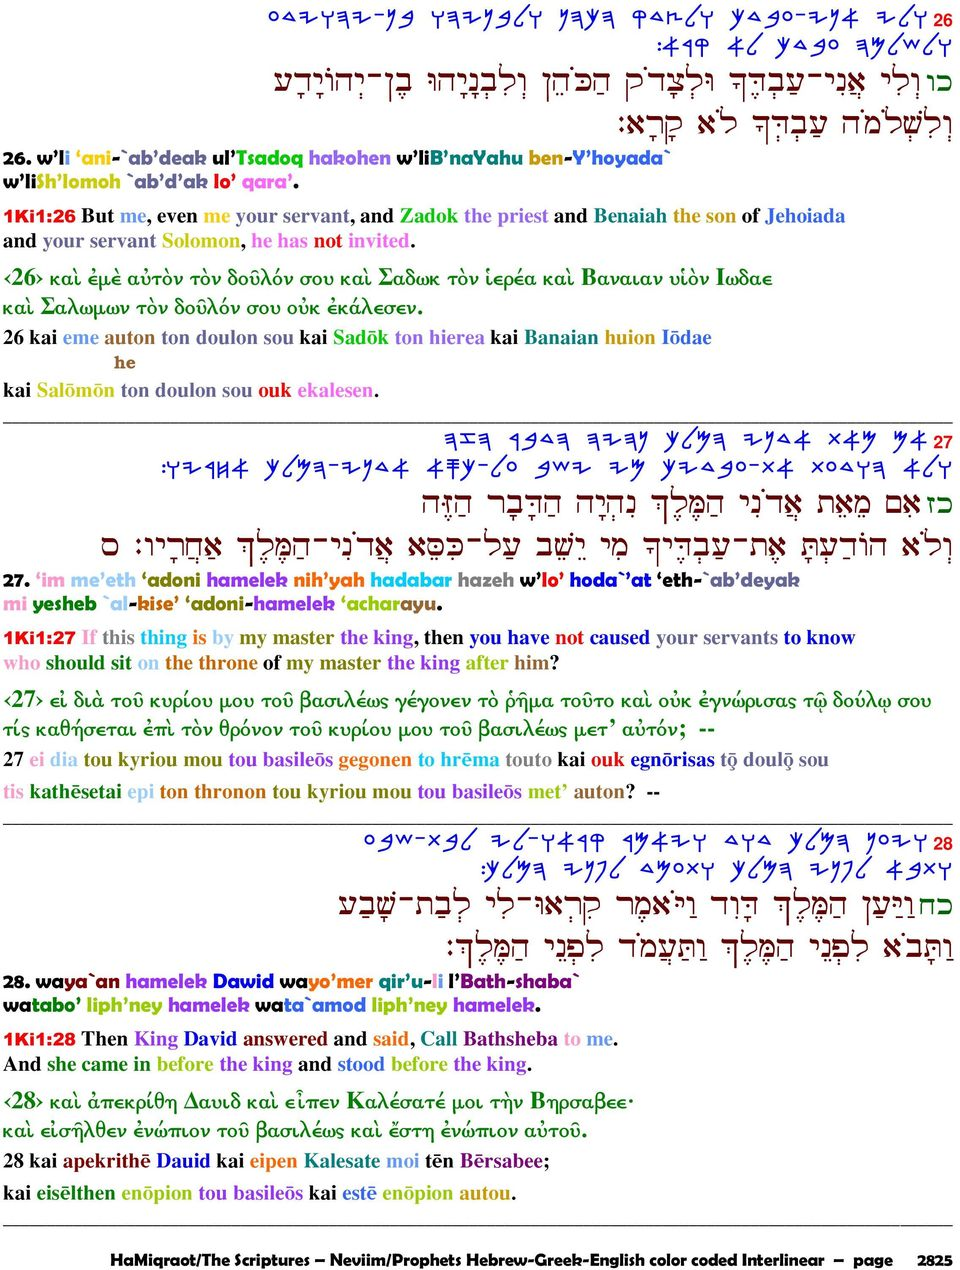 1Ki1:26 But me, even me your servant, and Zadok the priest and Benaiah the son of Jehoiada and your servant Solomon, he has not invited.